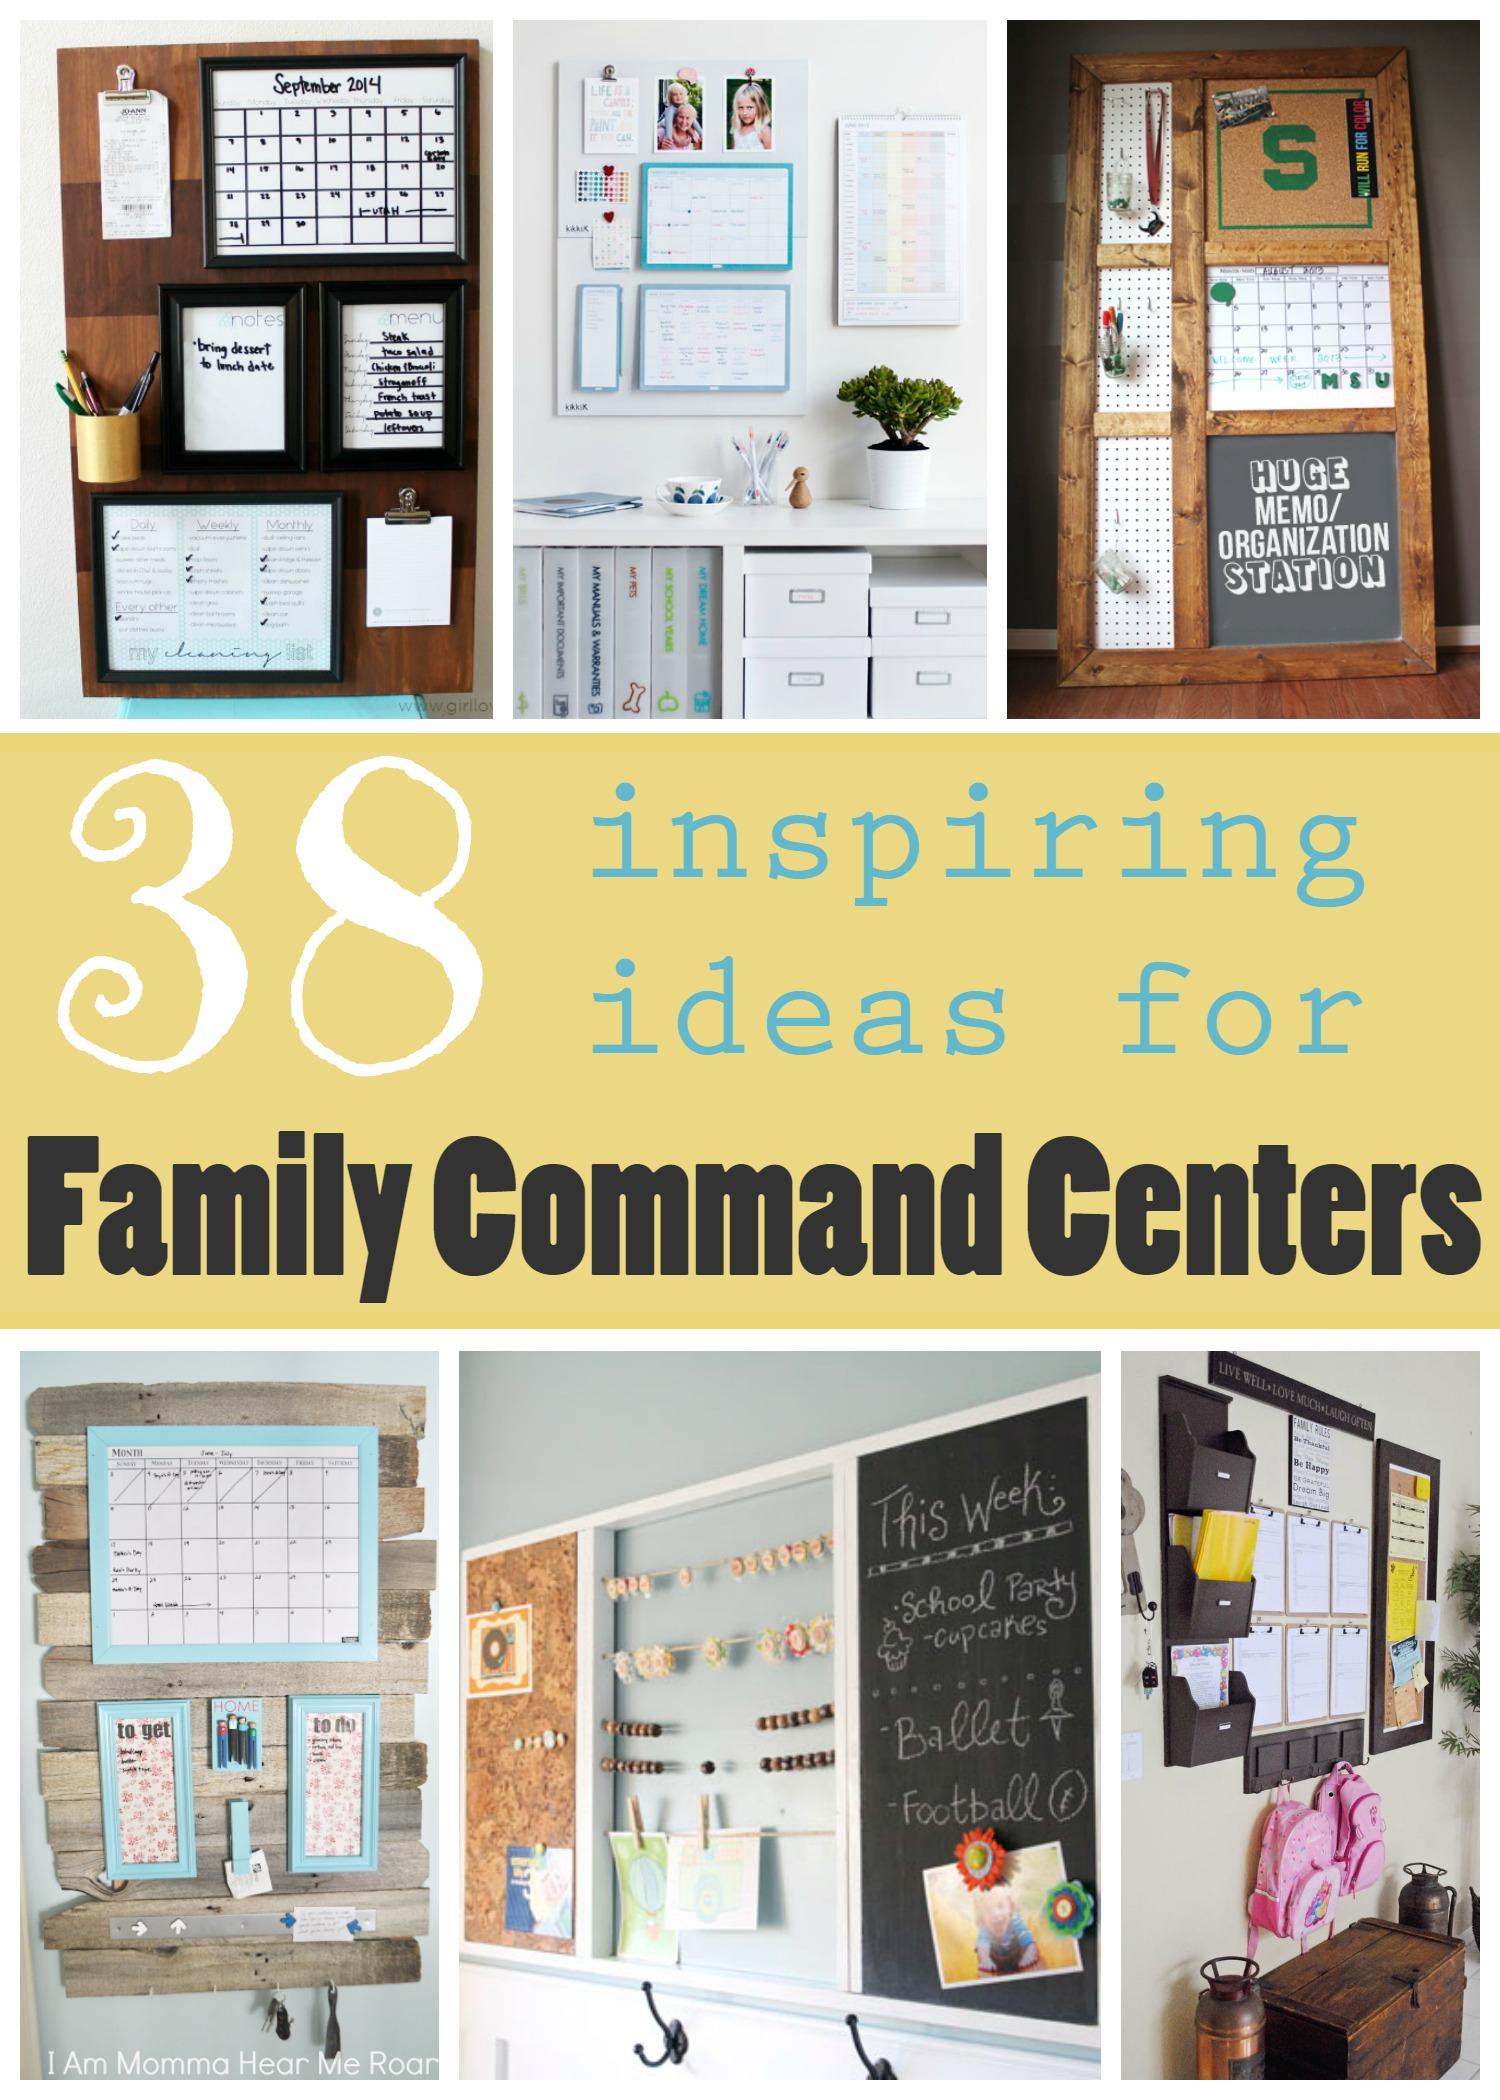 Remodelaholic | 38 Inspiring Ideas for Family Command Centers